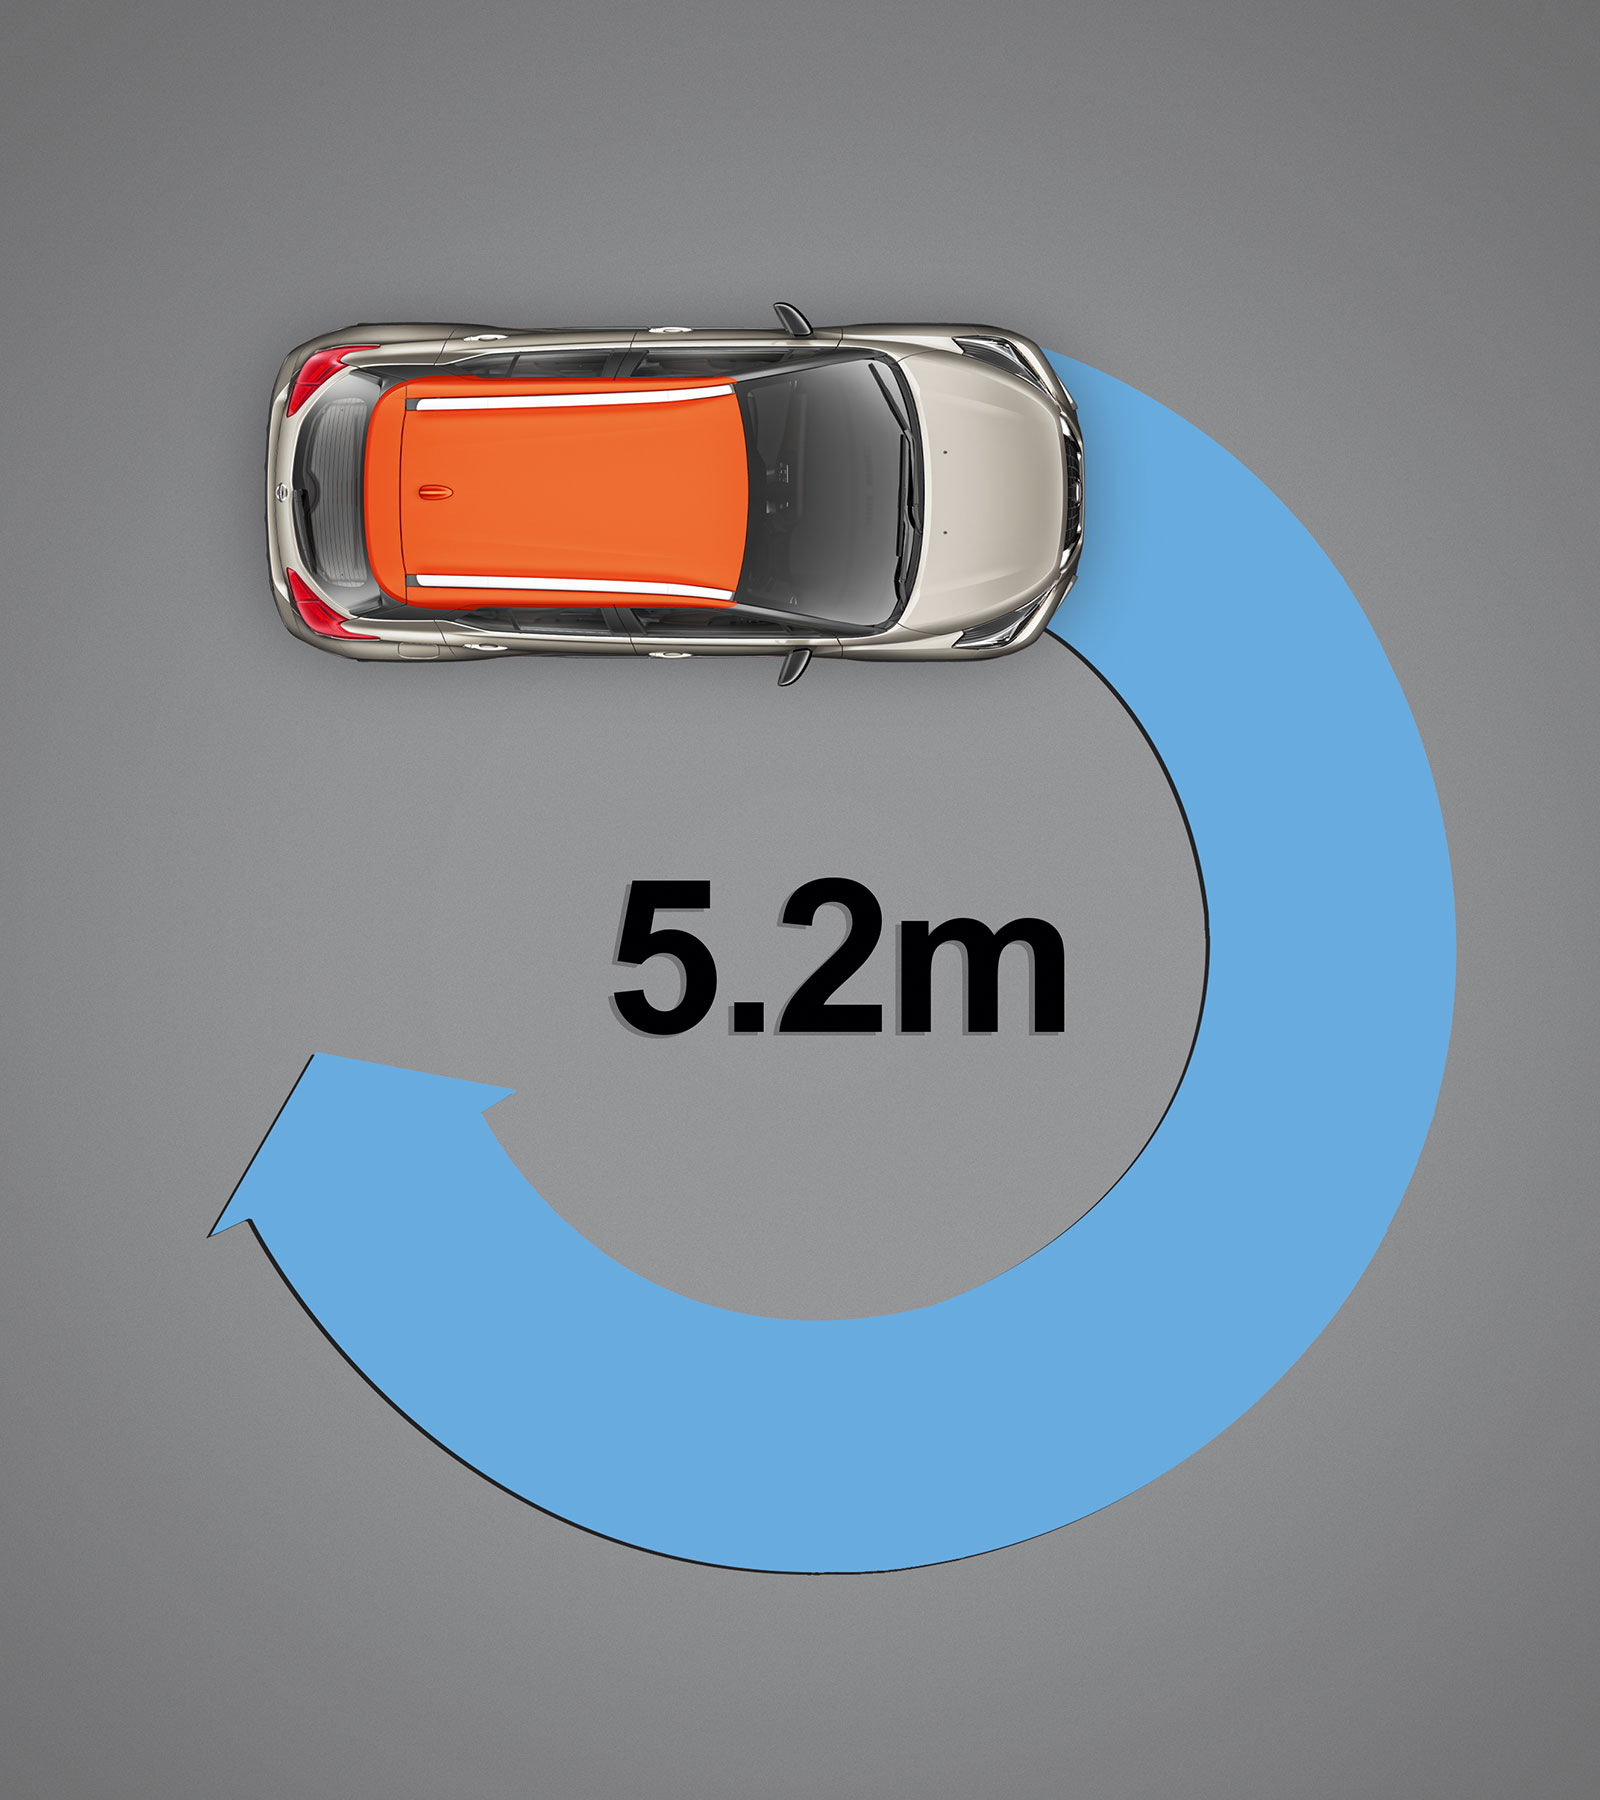 Best-In-Class Turning Radius (5.2m)